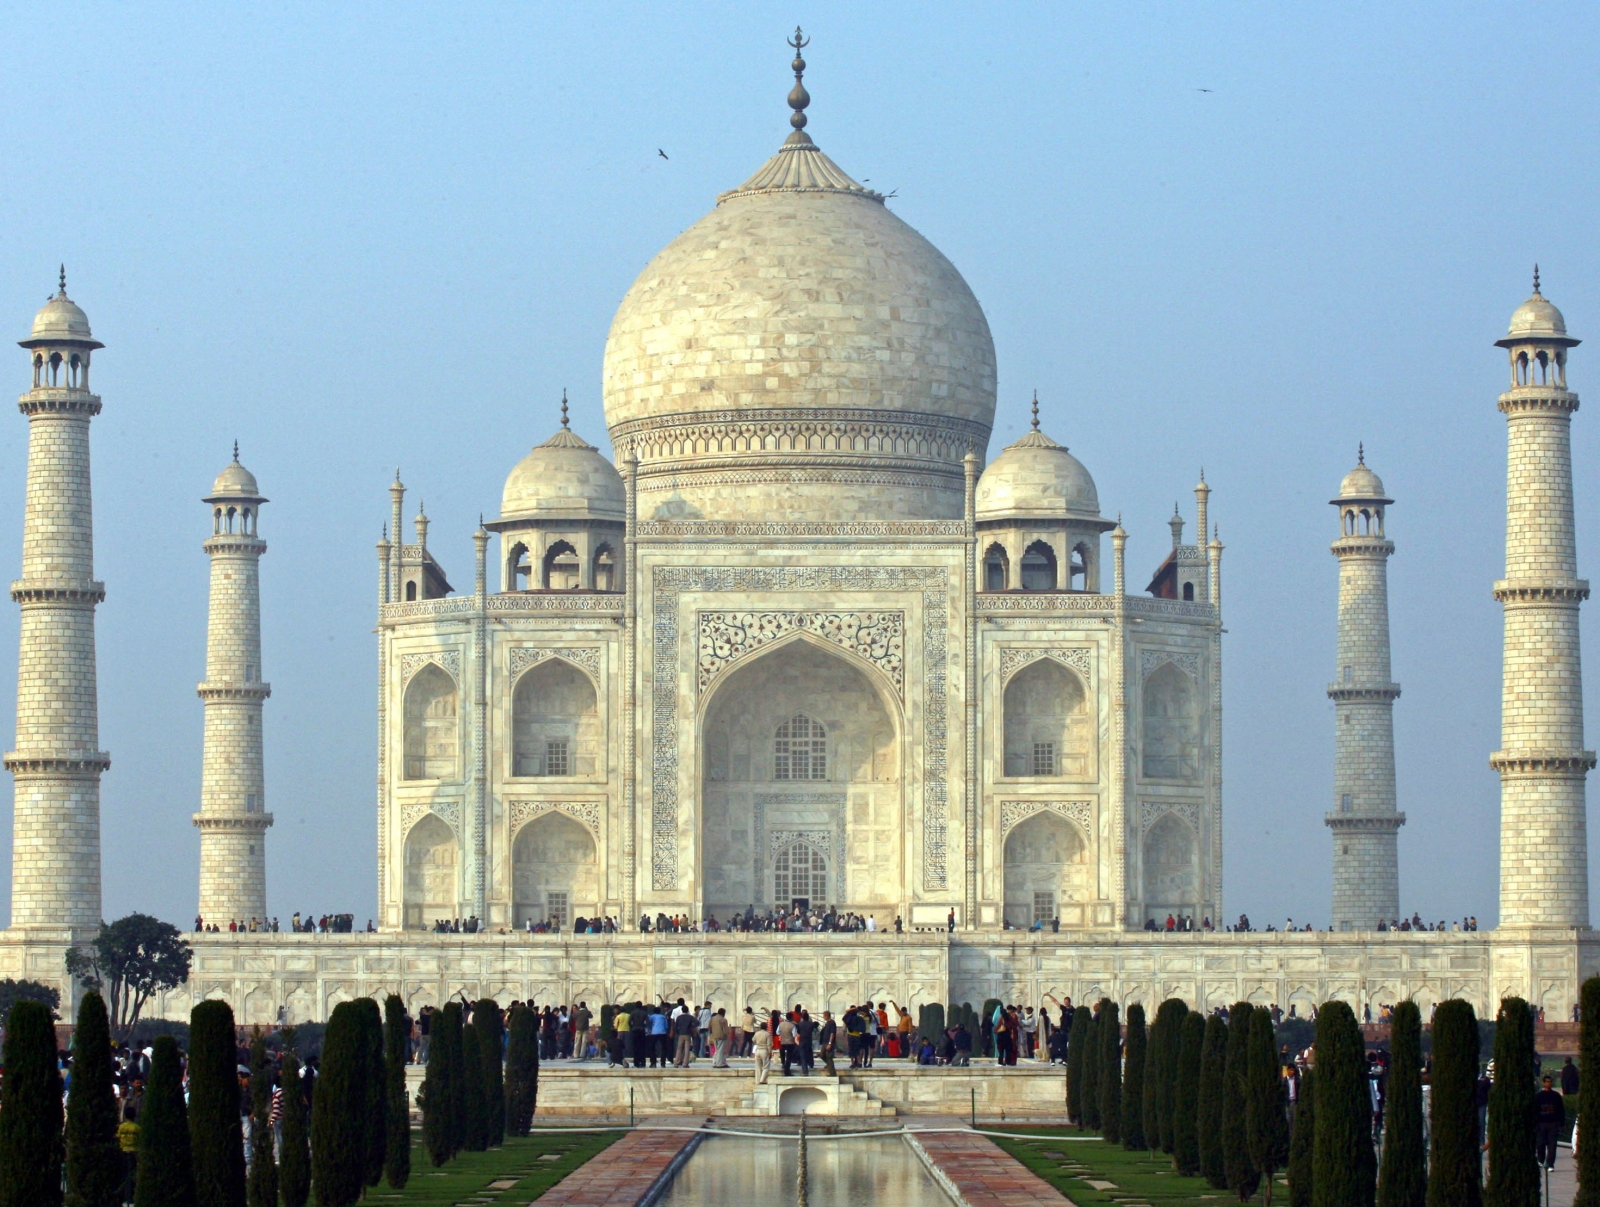 Saving the taj mahal 3d scanners record monument in minute detail to